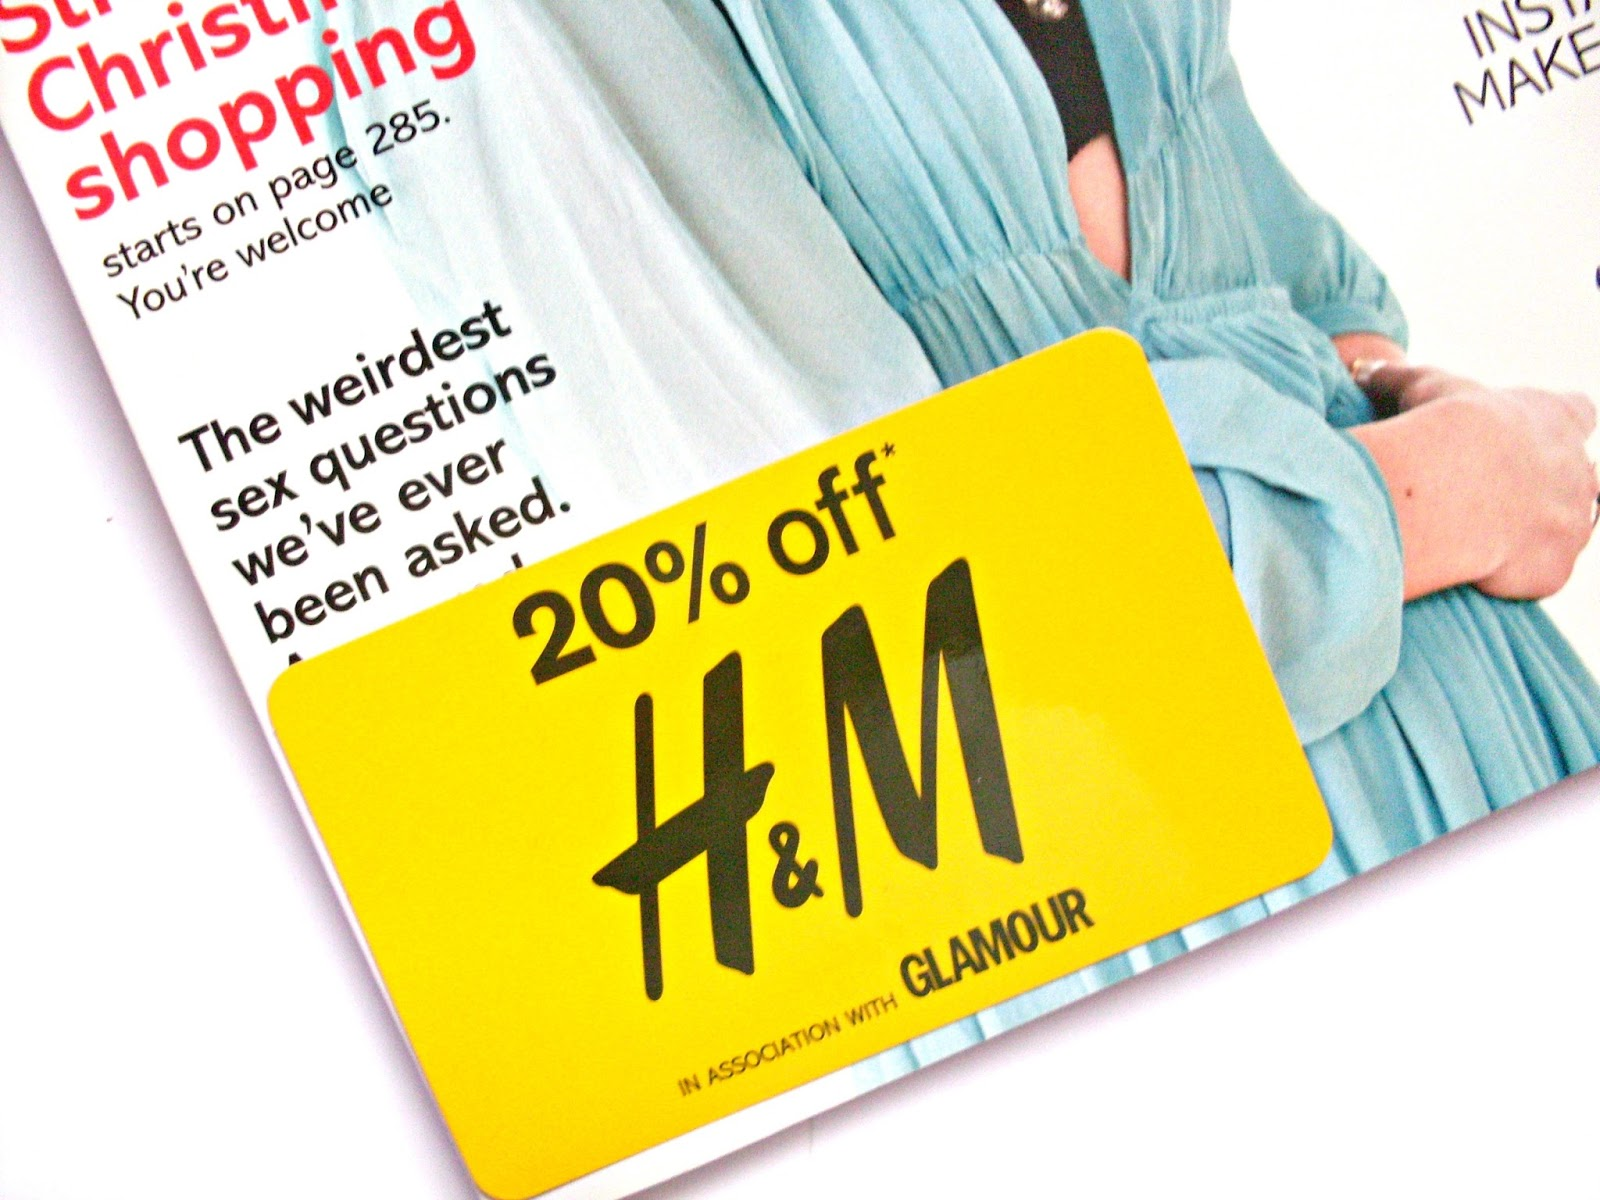 free h&m discount glamour